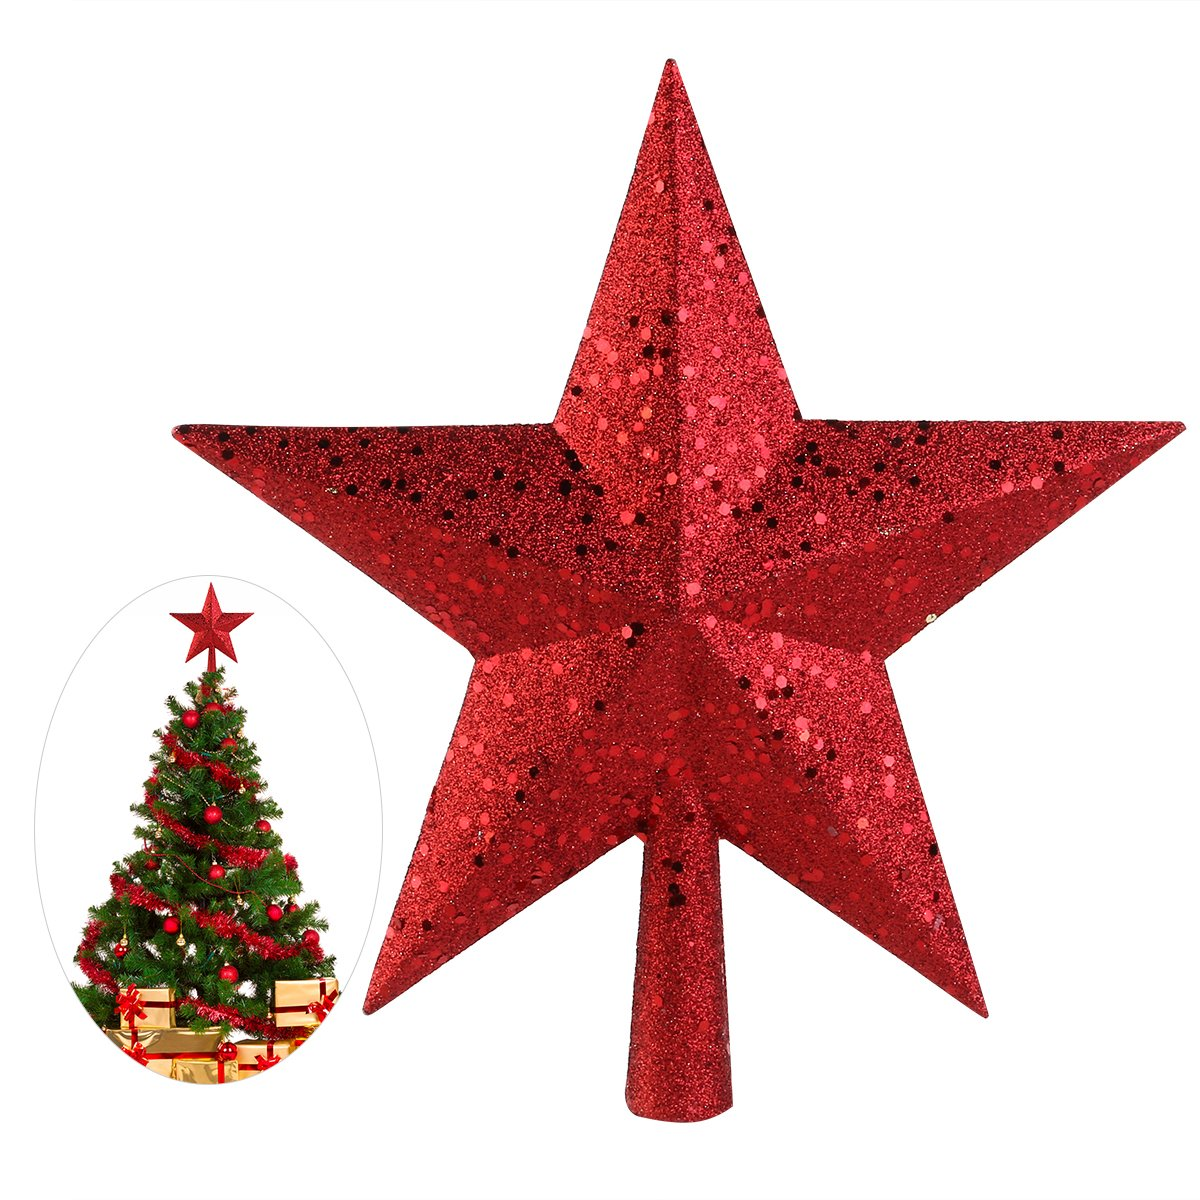 NICEXMAS Christmas Tree Toppers Star Treasures Glittered Decoration Ornament, 9 inch (Gold) (9inch, Red)